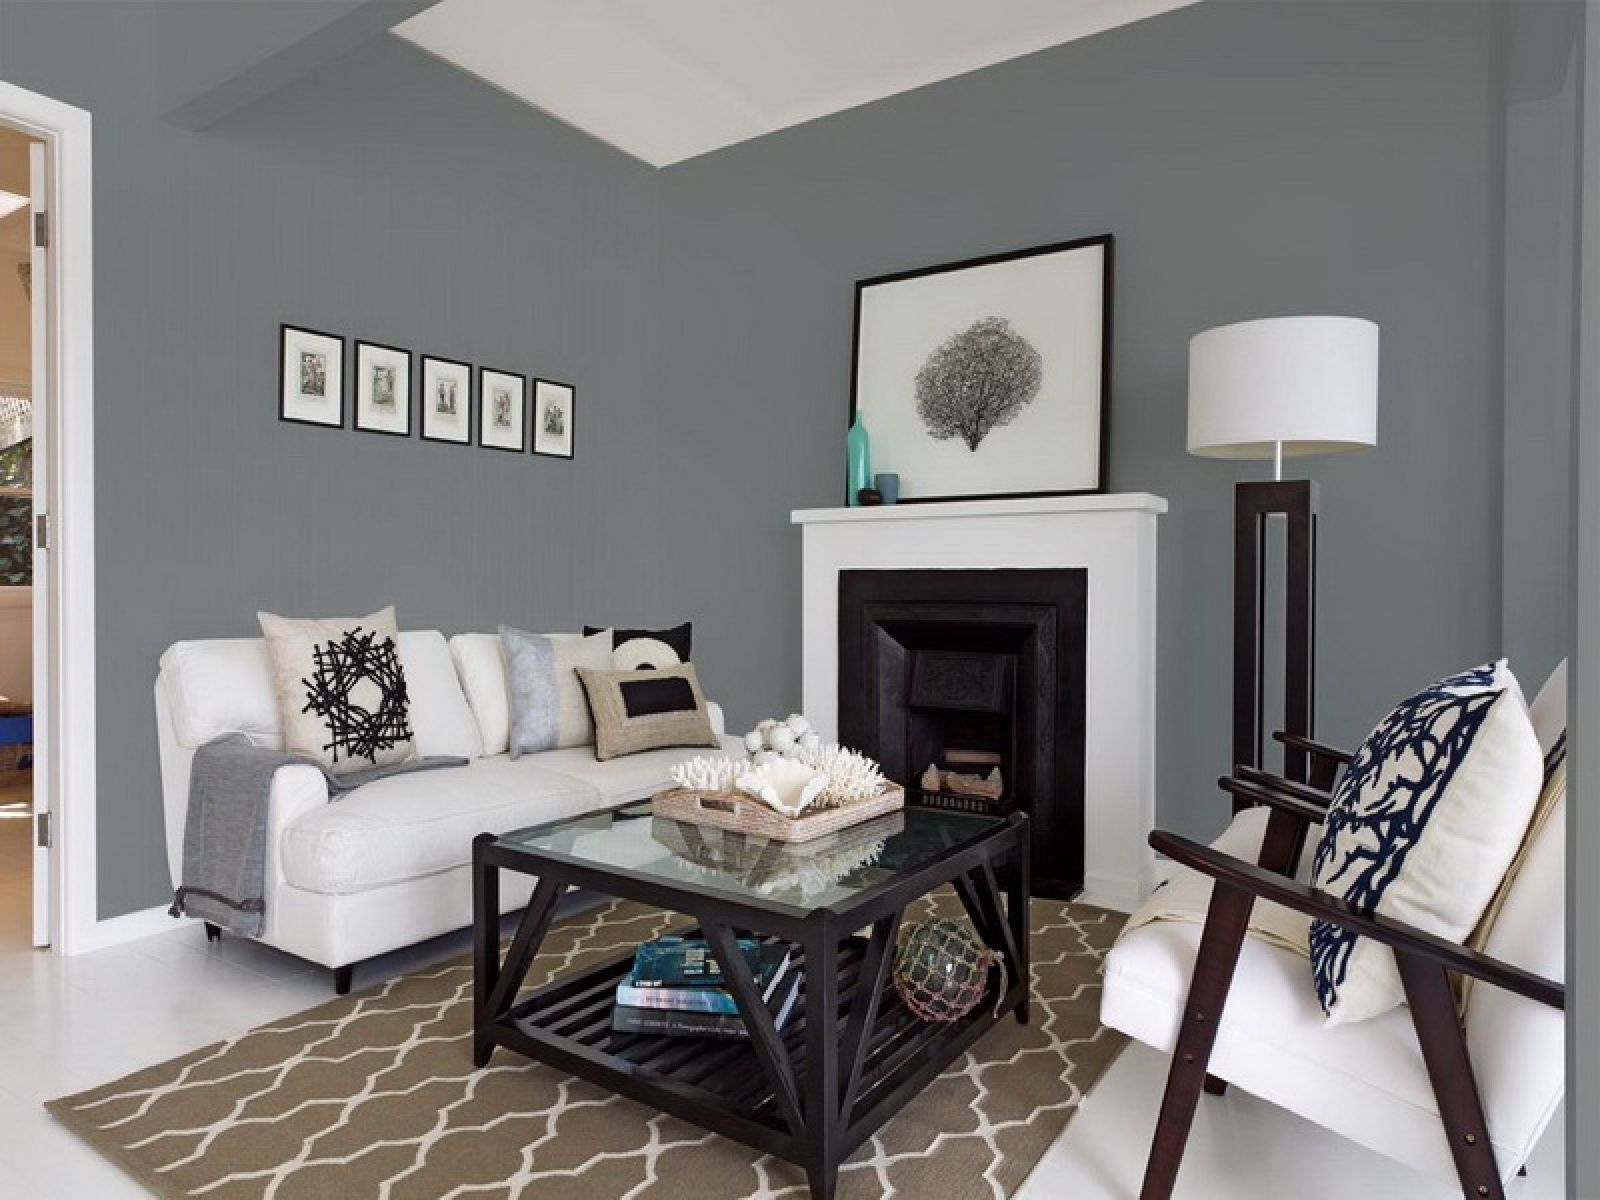 paint colours in rooms grey